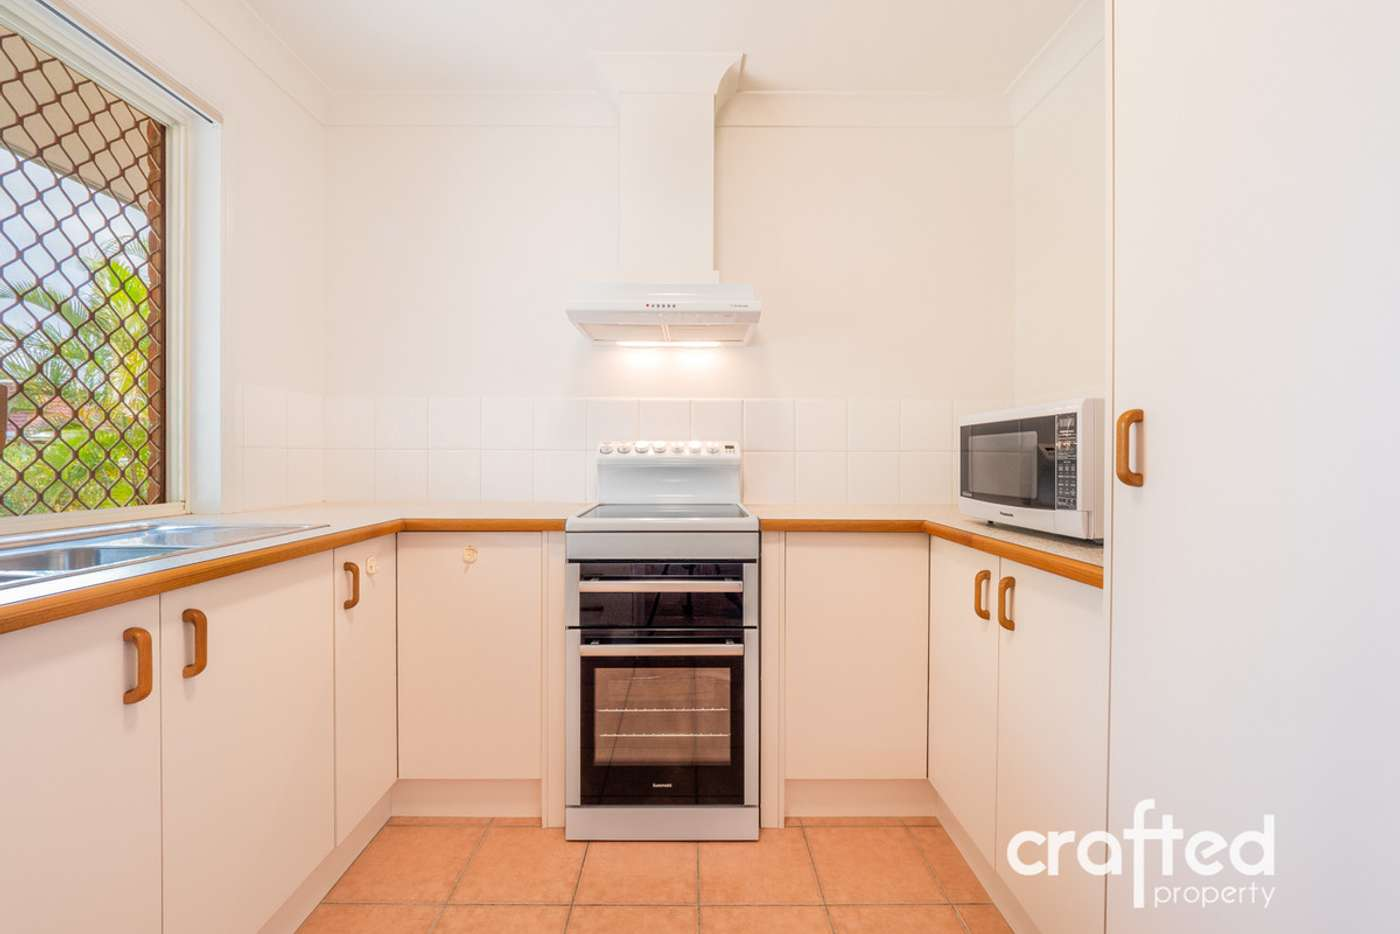 Fifth view of Homely house listing, 34 Sundowner Street, Regents Park QLD 4118